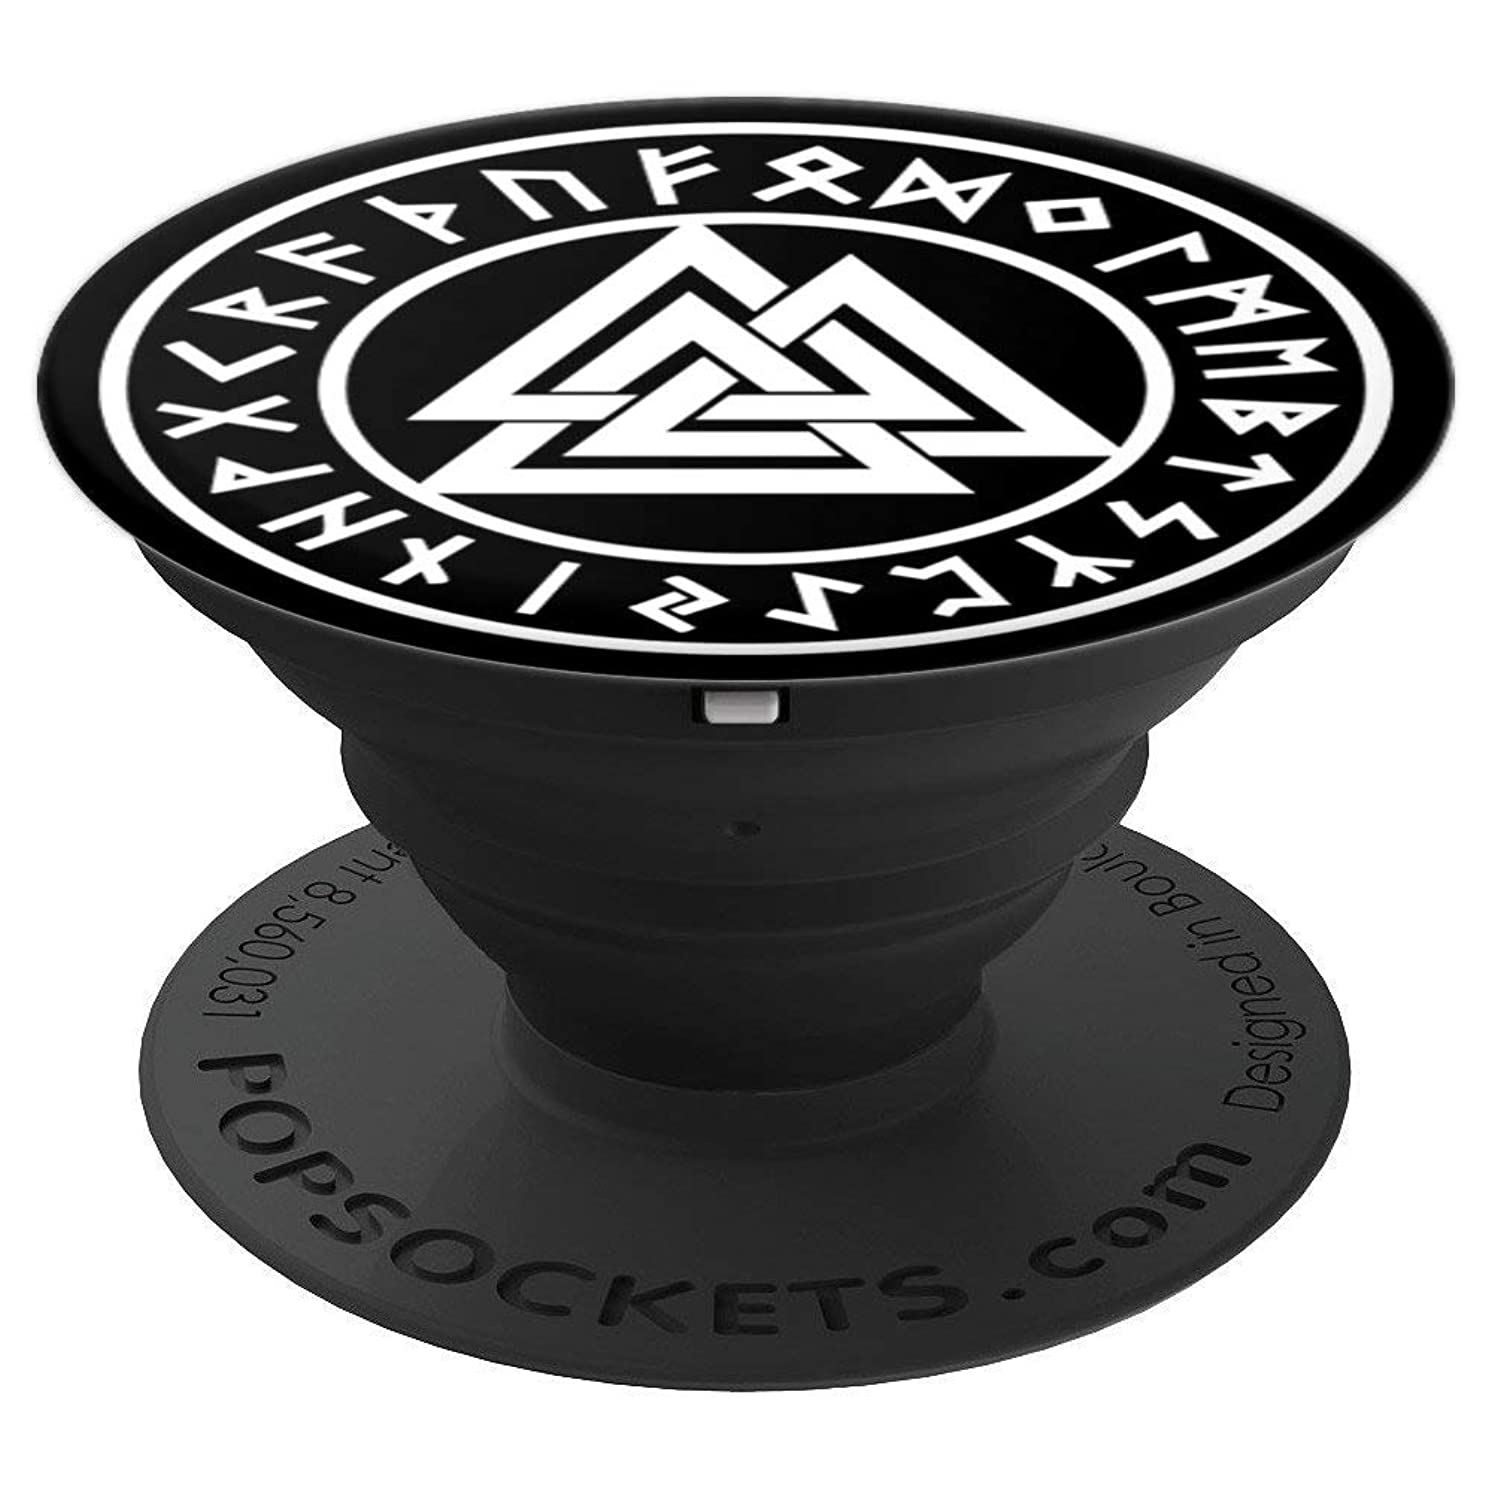 Valknut Odin Sign Futhark Runes Vikings Nordic Celtic Knot - PopSockets Grip and Stand for Phones and Tablets